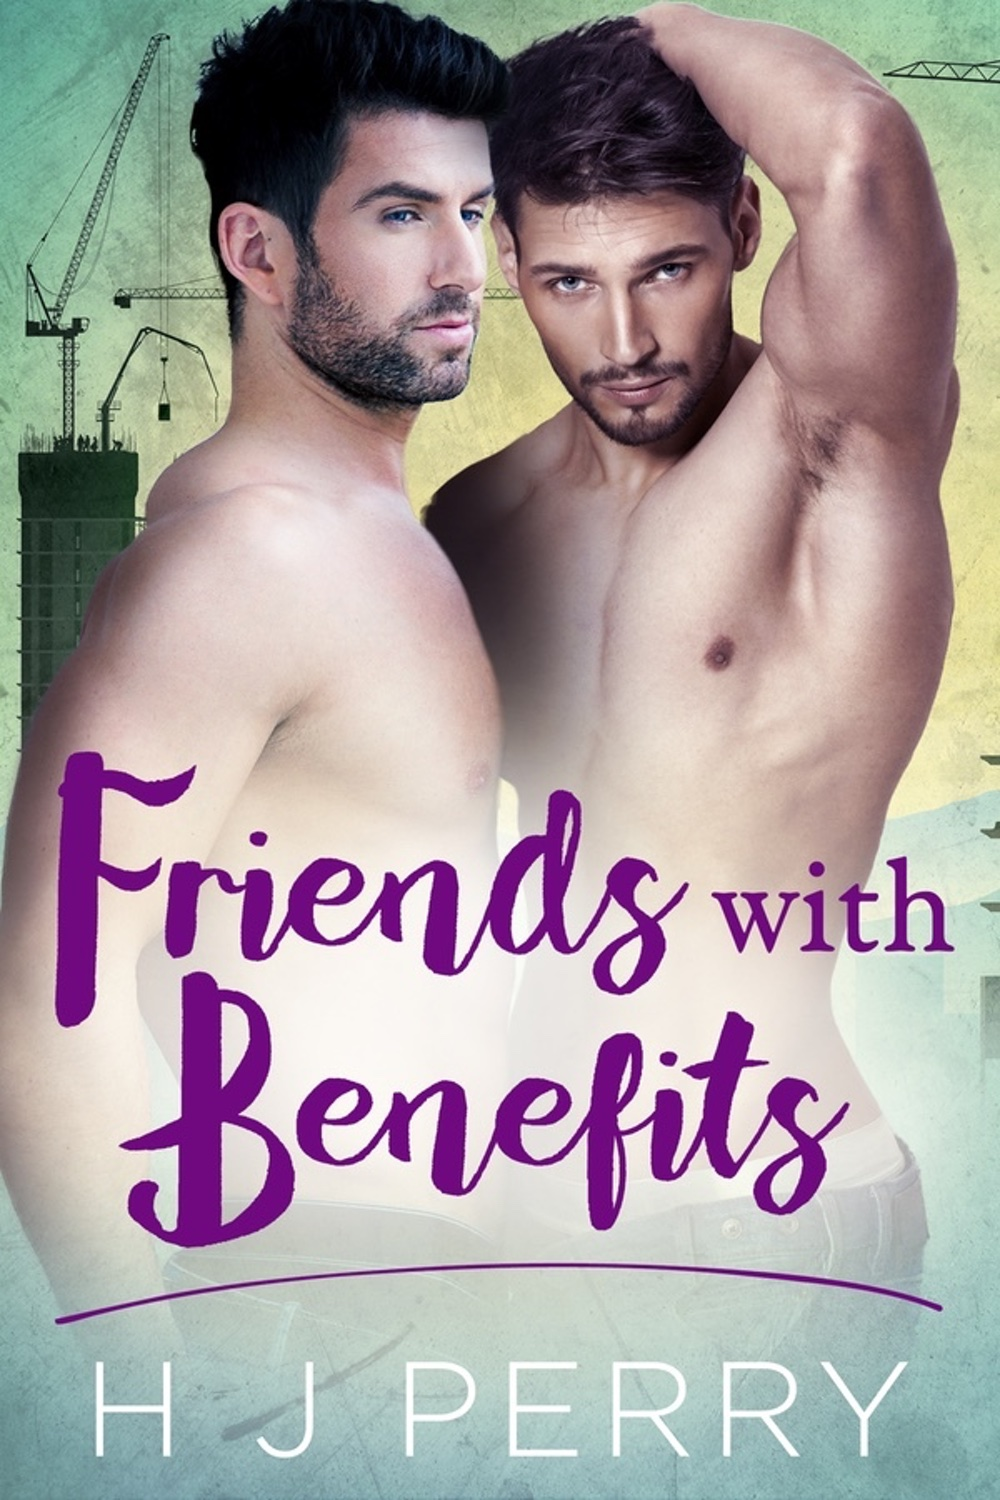 Friends with Benefits by H J Perry